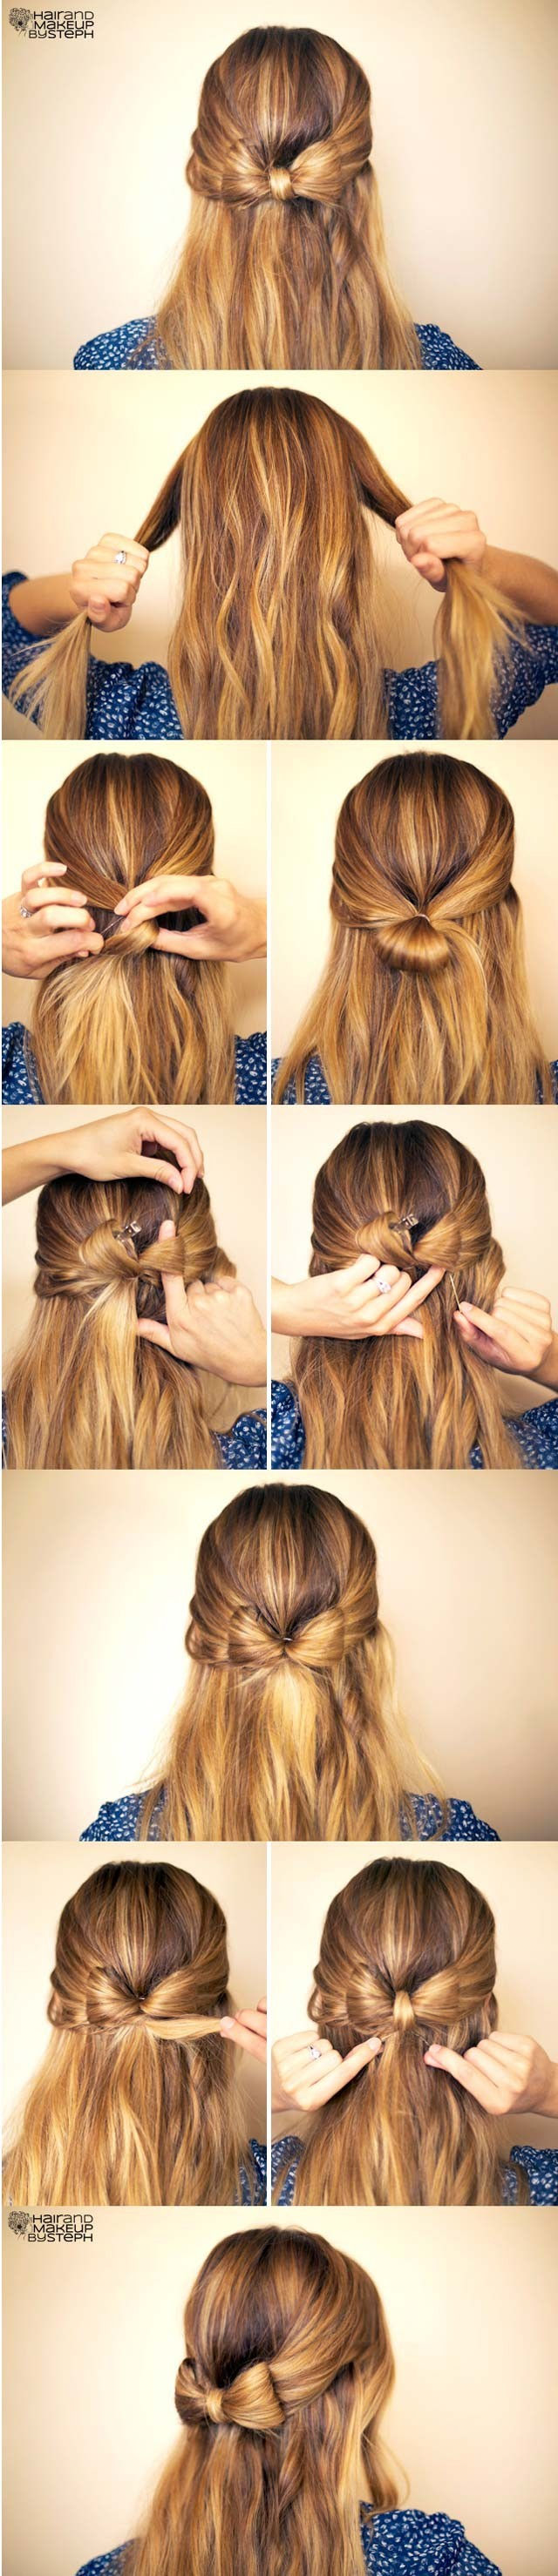 Cute Easy Hairstyle: Hair Bow Tutorial